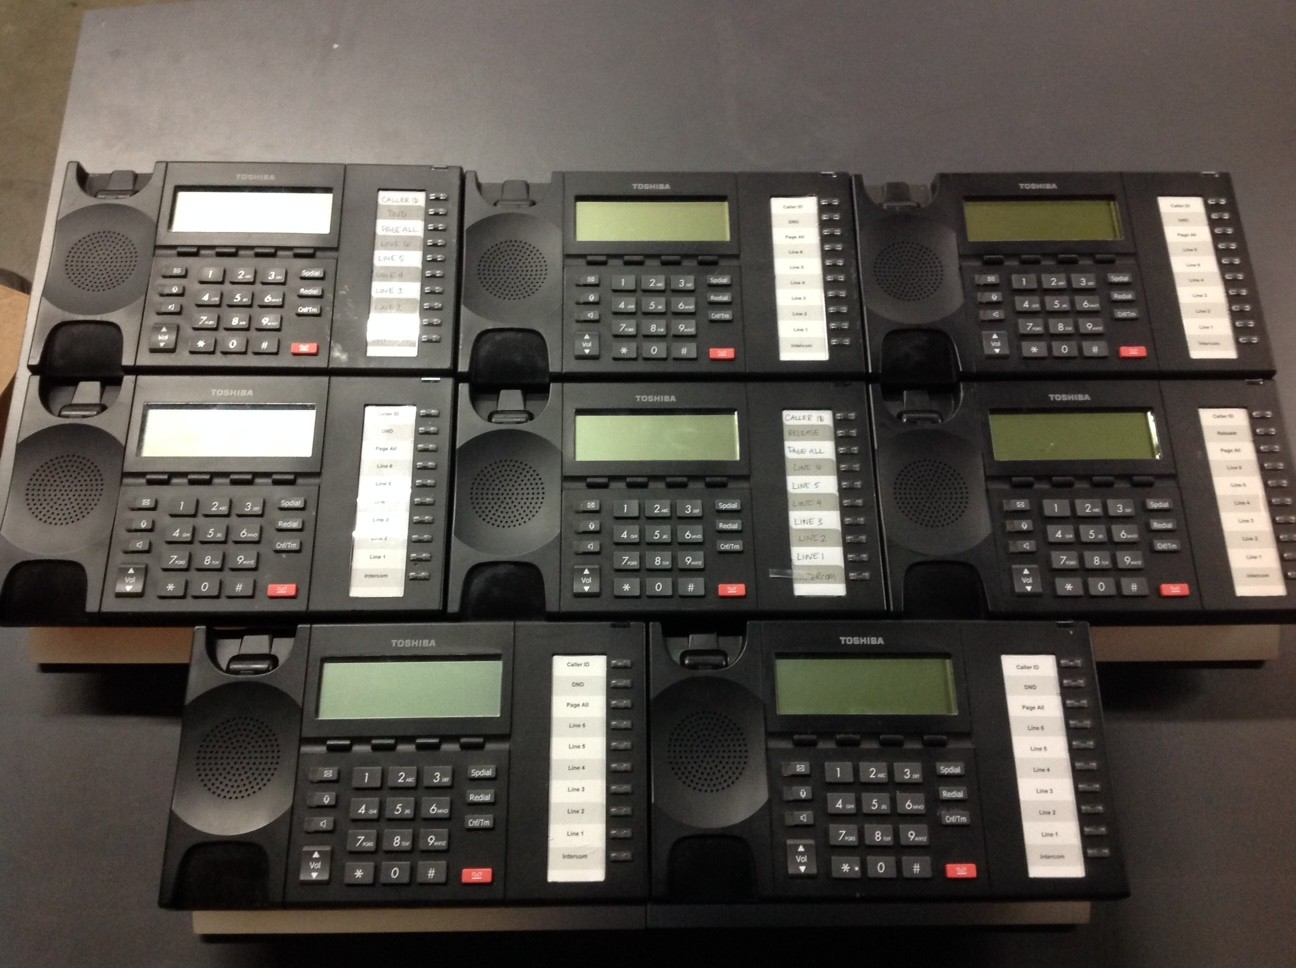 Toshiba PHONE SYSTEM WITH 11 UNITS